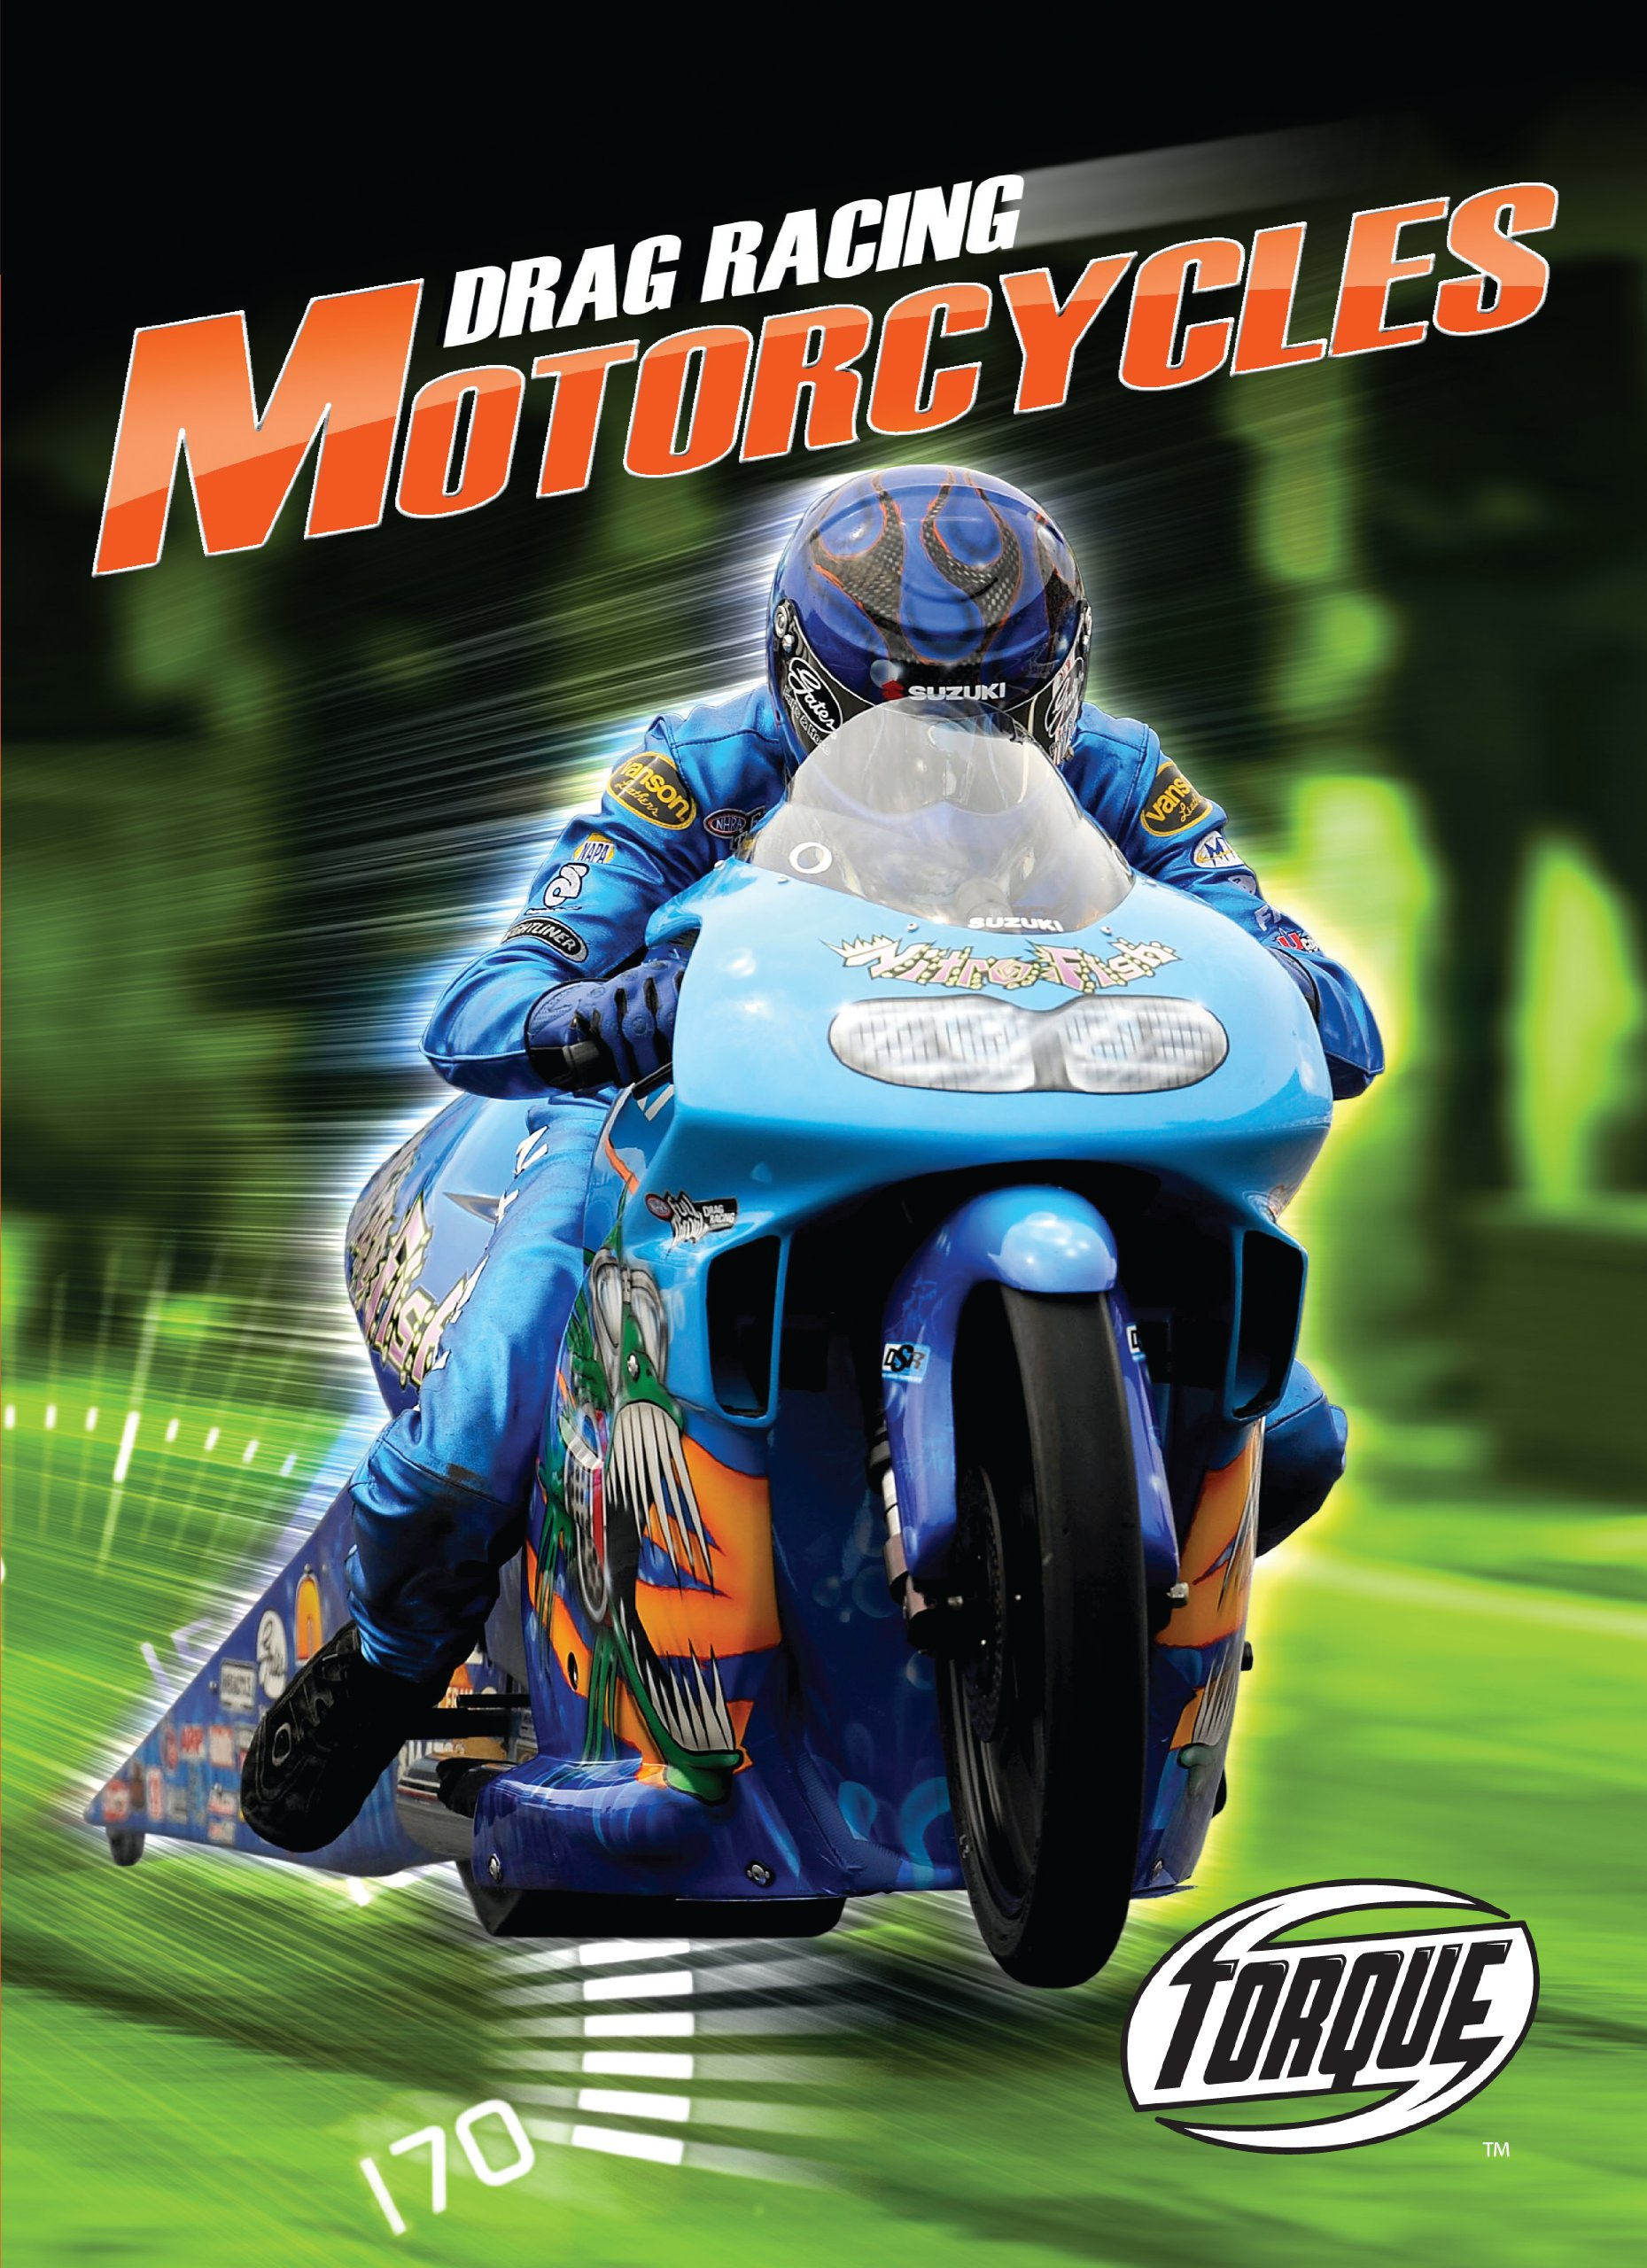 Drag Racing Motorcycles (Torque Books: The World's Fastest) (Torque: The Worlds Fastest)